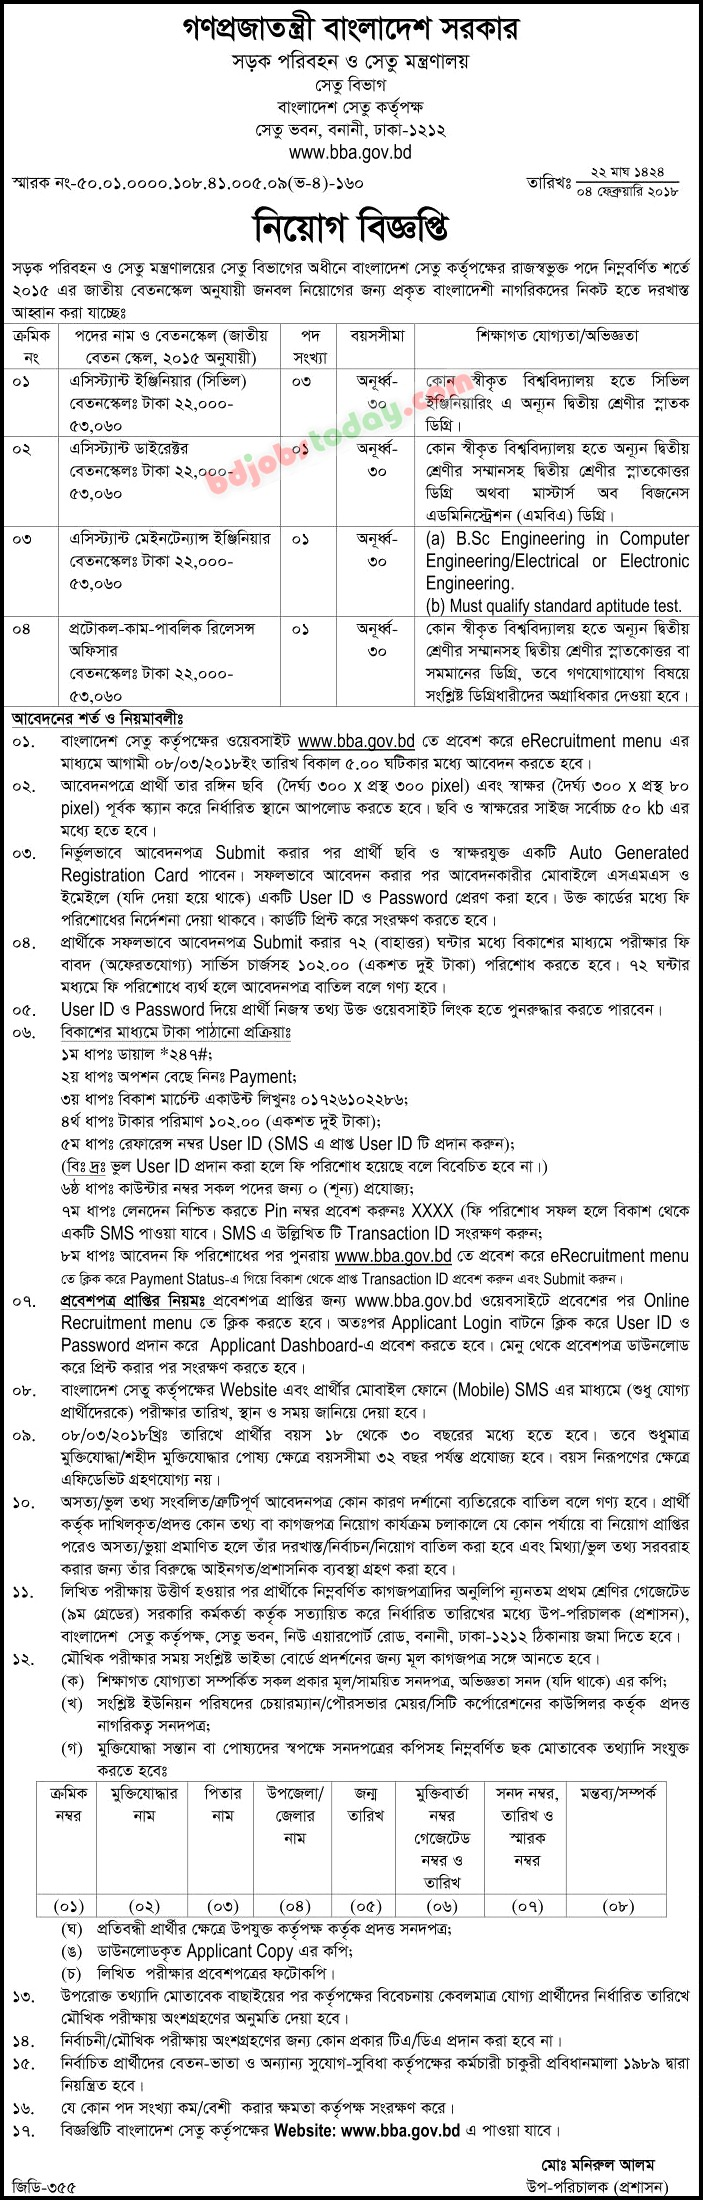 Bangladesh Bridge Authority jobs